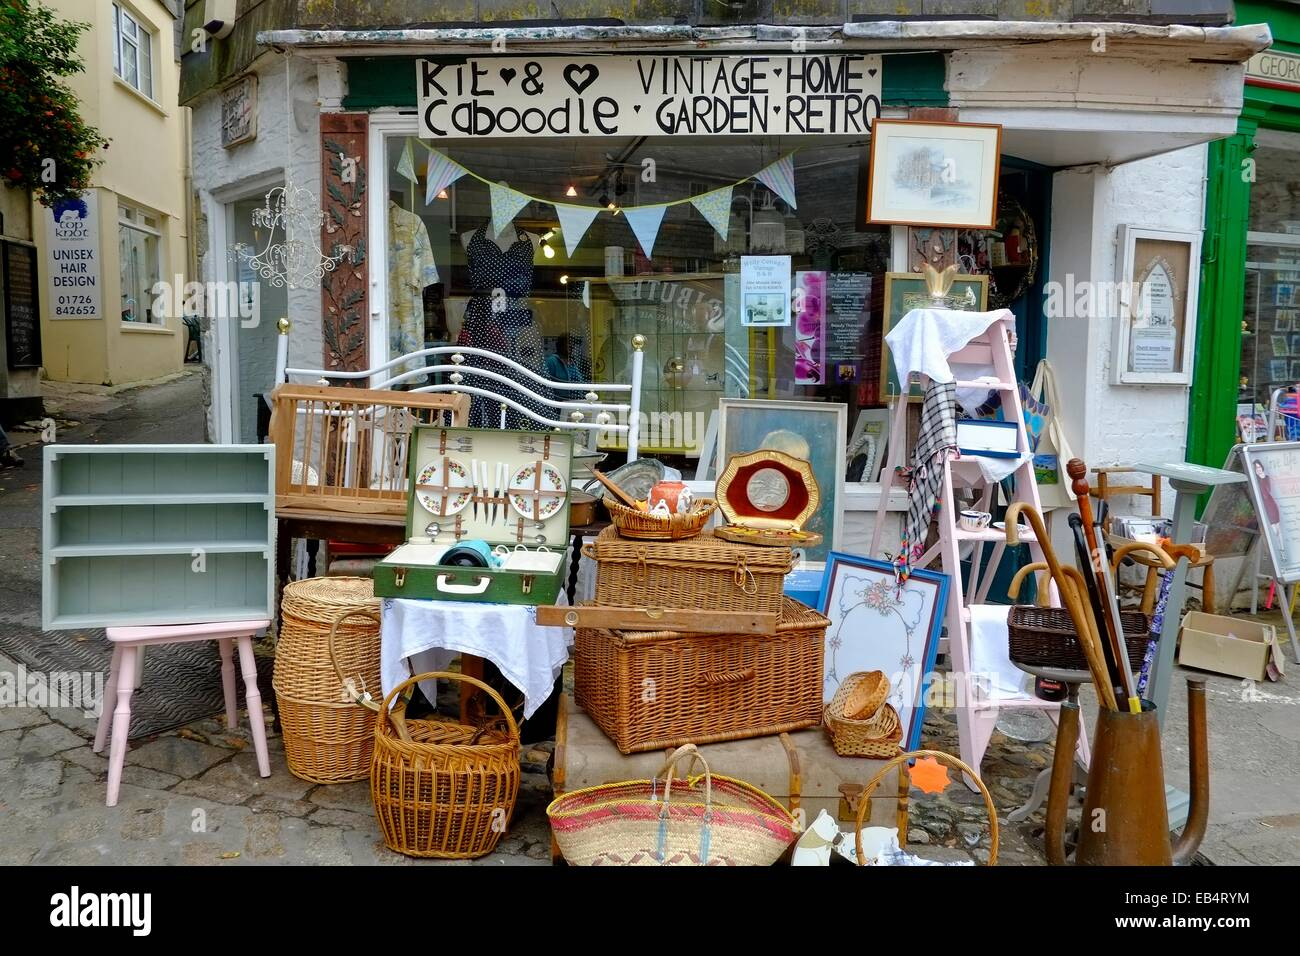 Kit And Caboodle Vintage Home Garden Retro Furniture Shop Stock Photo Royalty Free Image